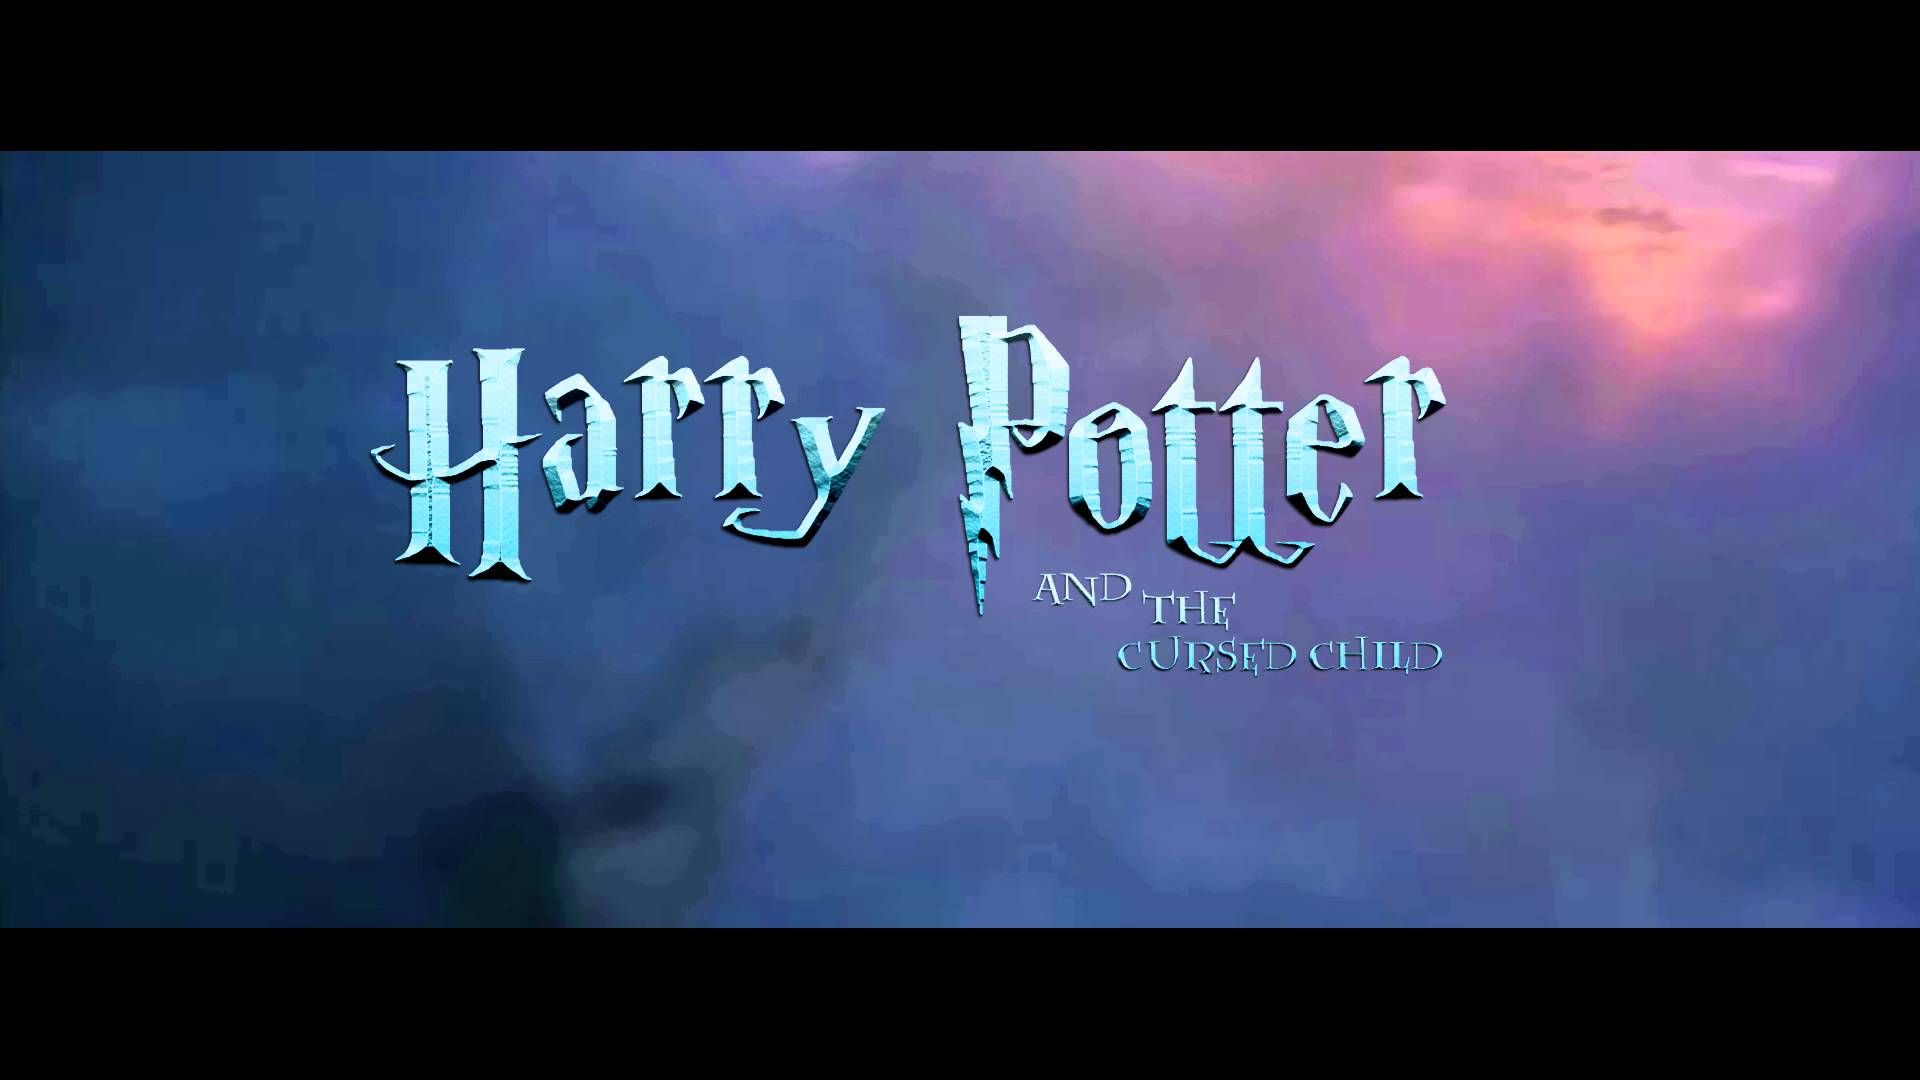 Harry Potter And The Cursed Child Official Trailer 1 2016 Daniel Radcl Daniel Radcliffe Movies Cursed Child Funny Gifs Fails